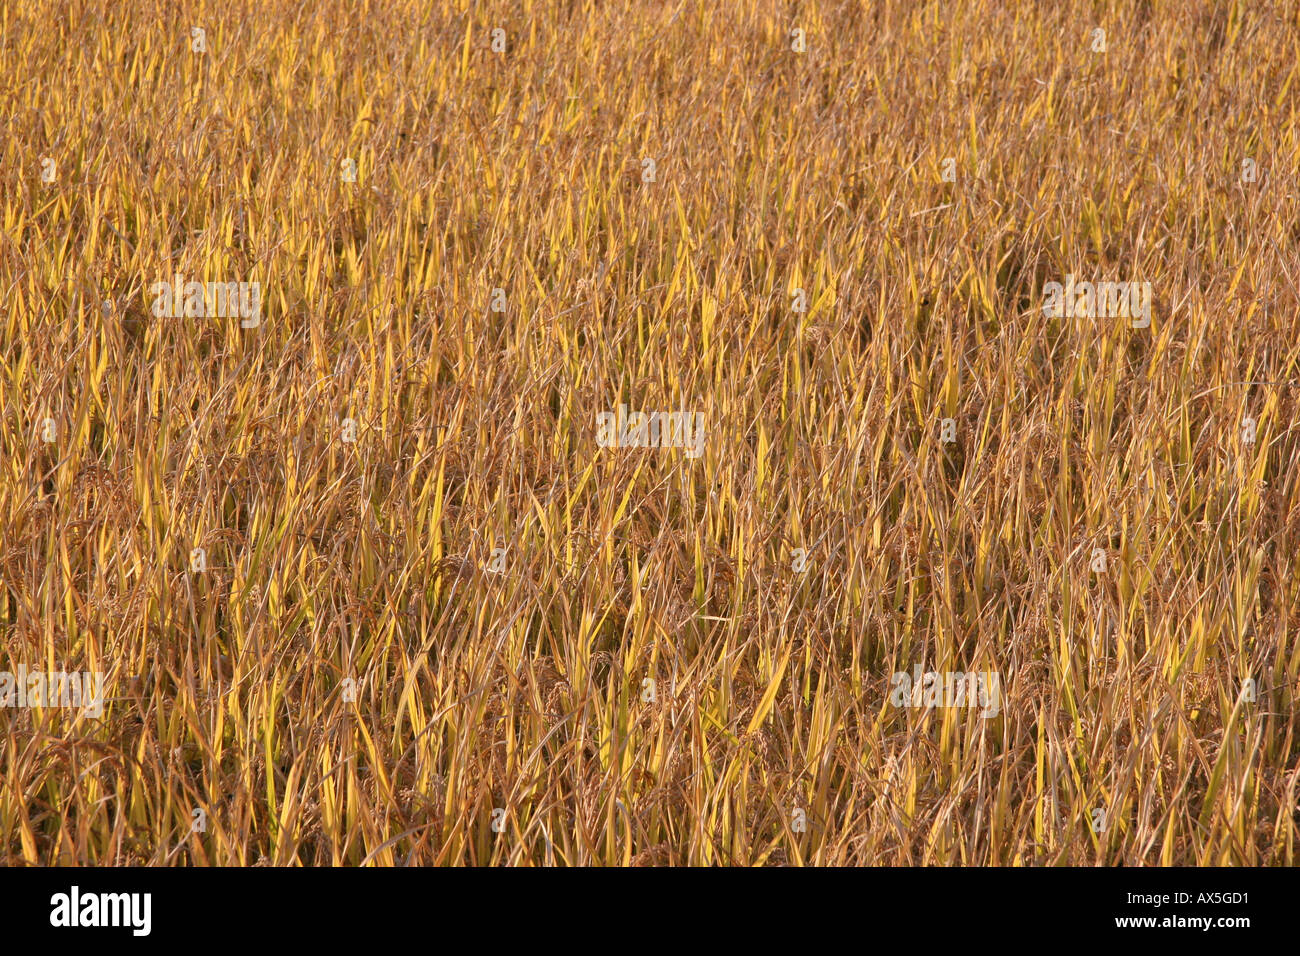 Rice field just before harvest, Korea Stock Photo